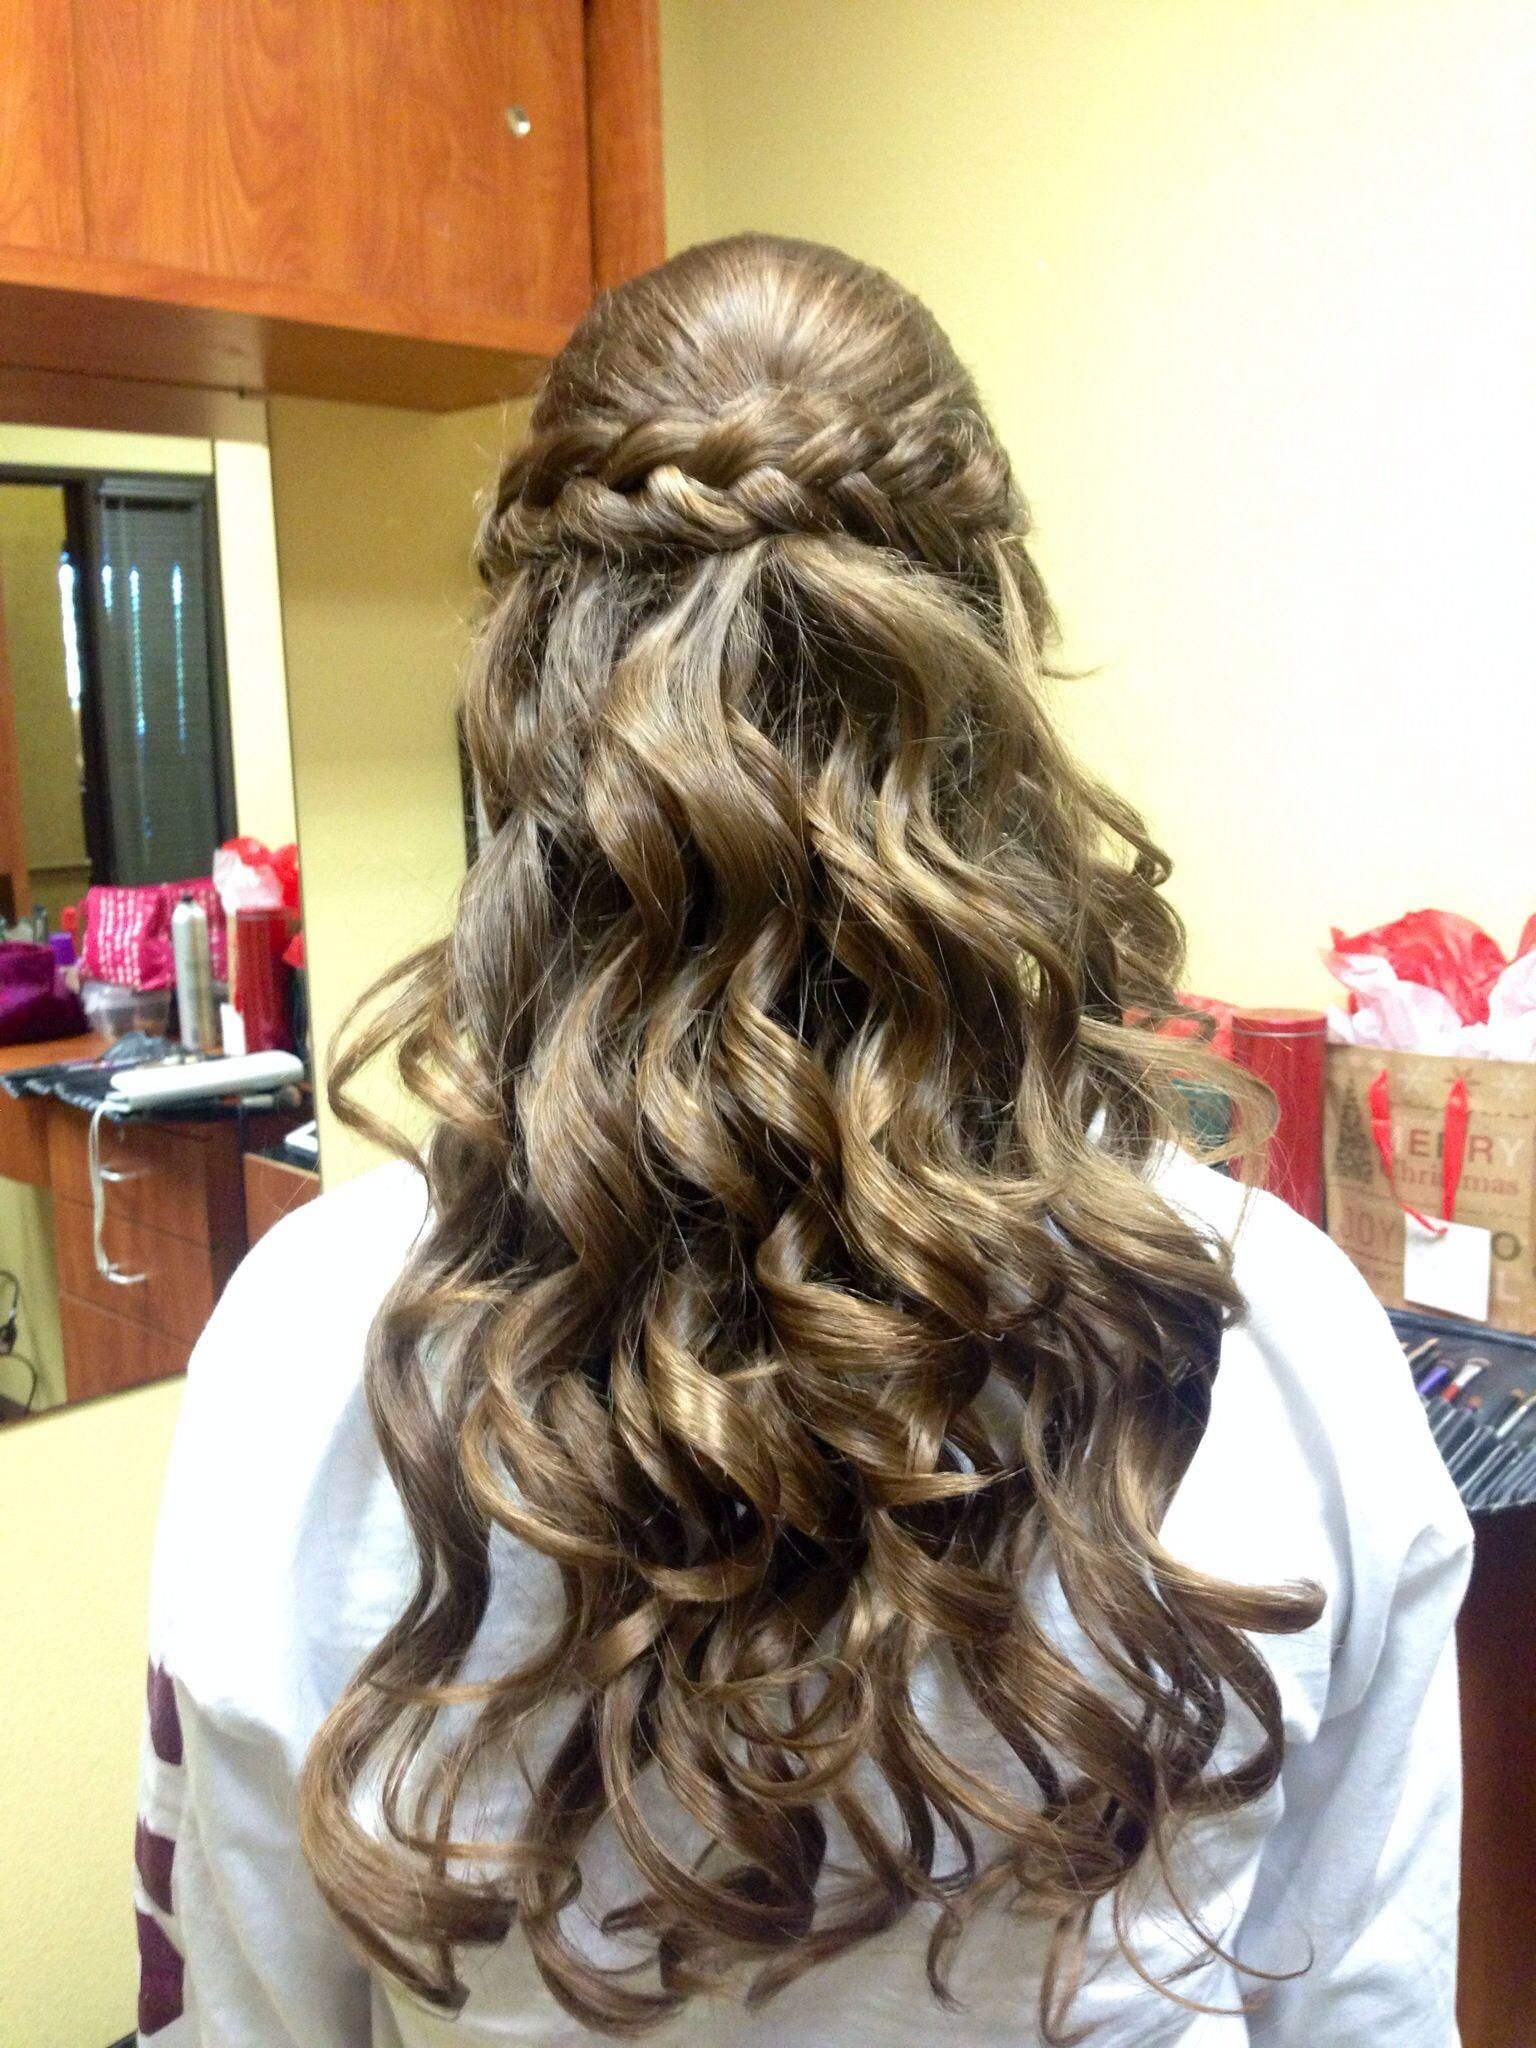 Pin By Cassidy Carlson On Clothes Over Bros Dance Hairstyles Graduation Hairstyles Hair Styles